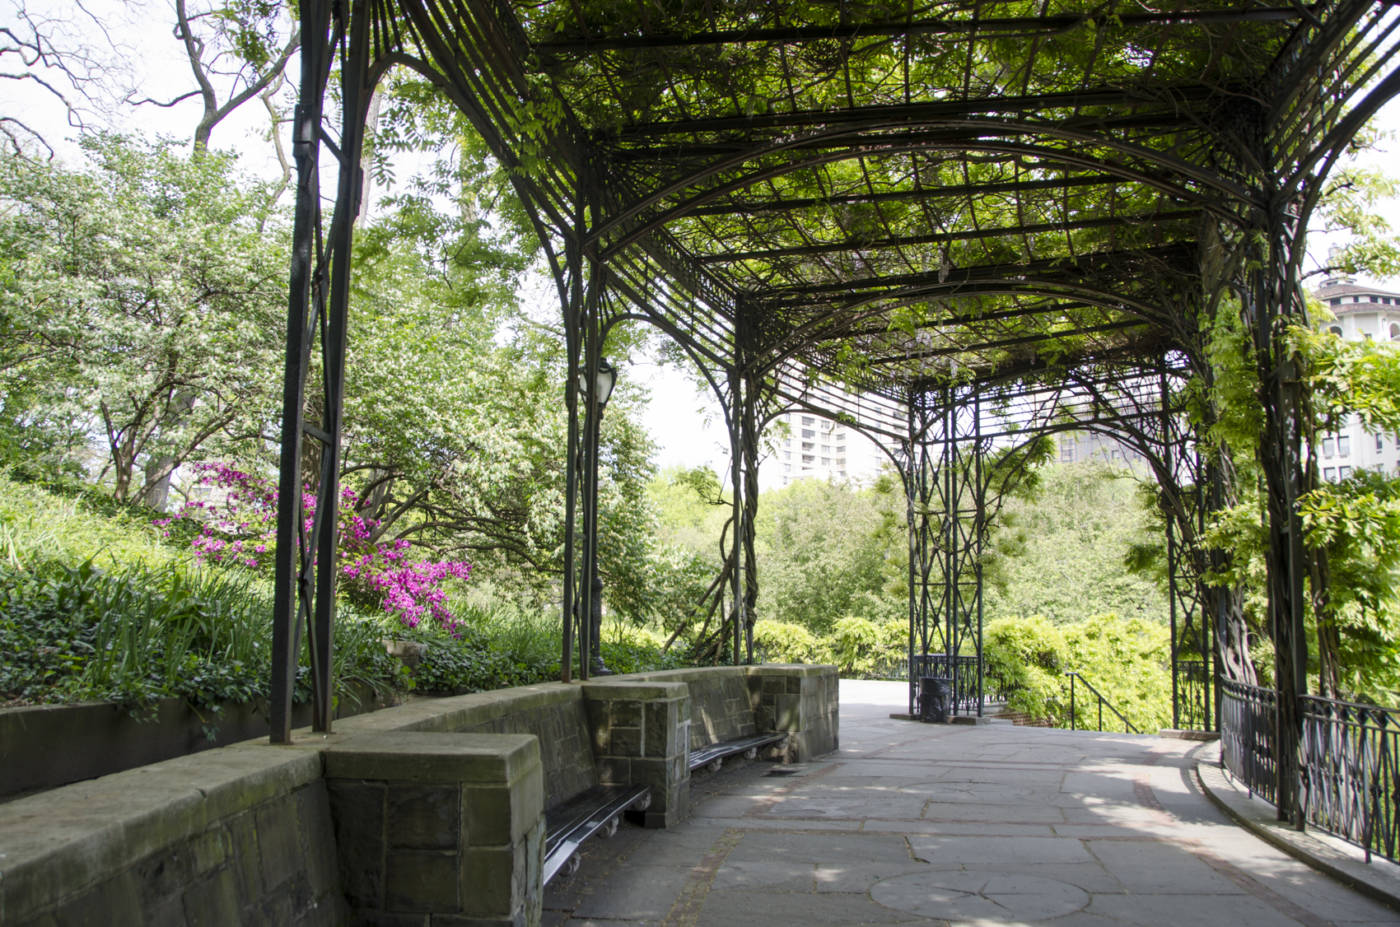 Genial A Must Stop Spot For Central Park Lovers: The Conservatory Garden   Garden  Collage Magazine